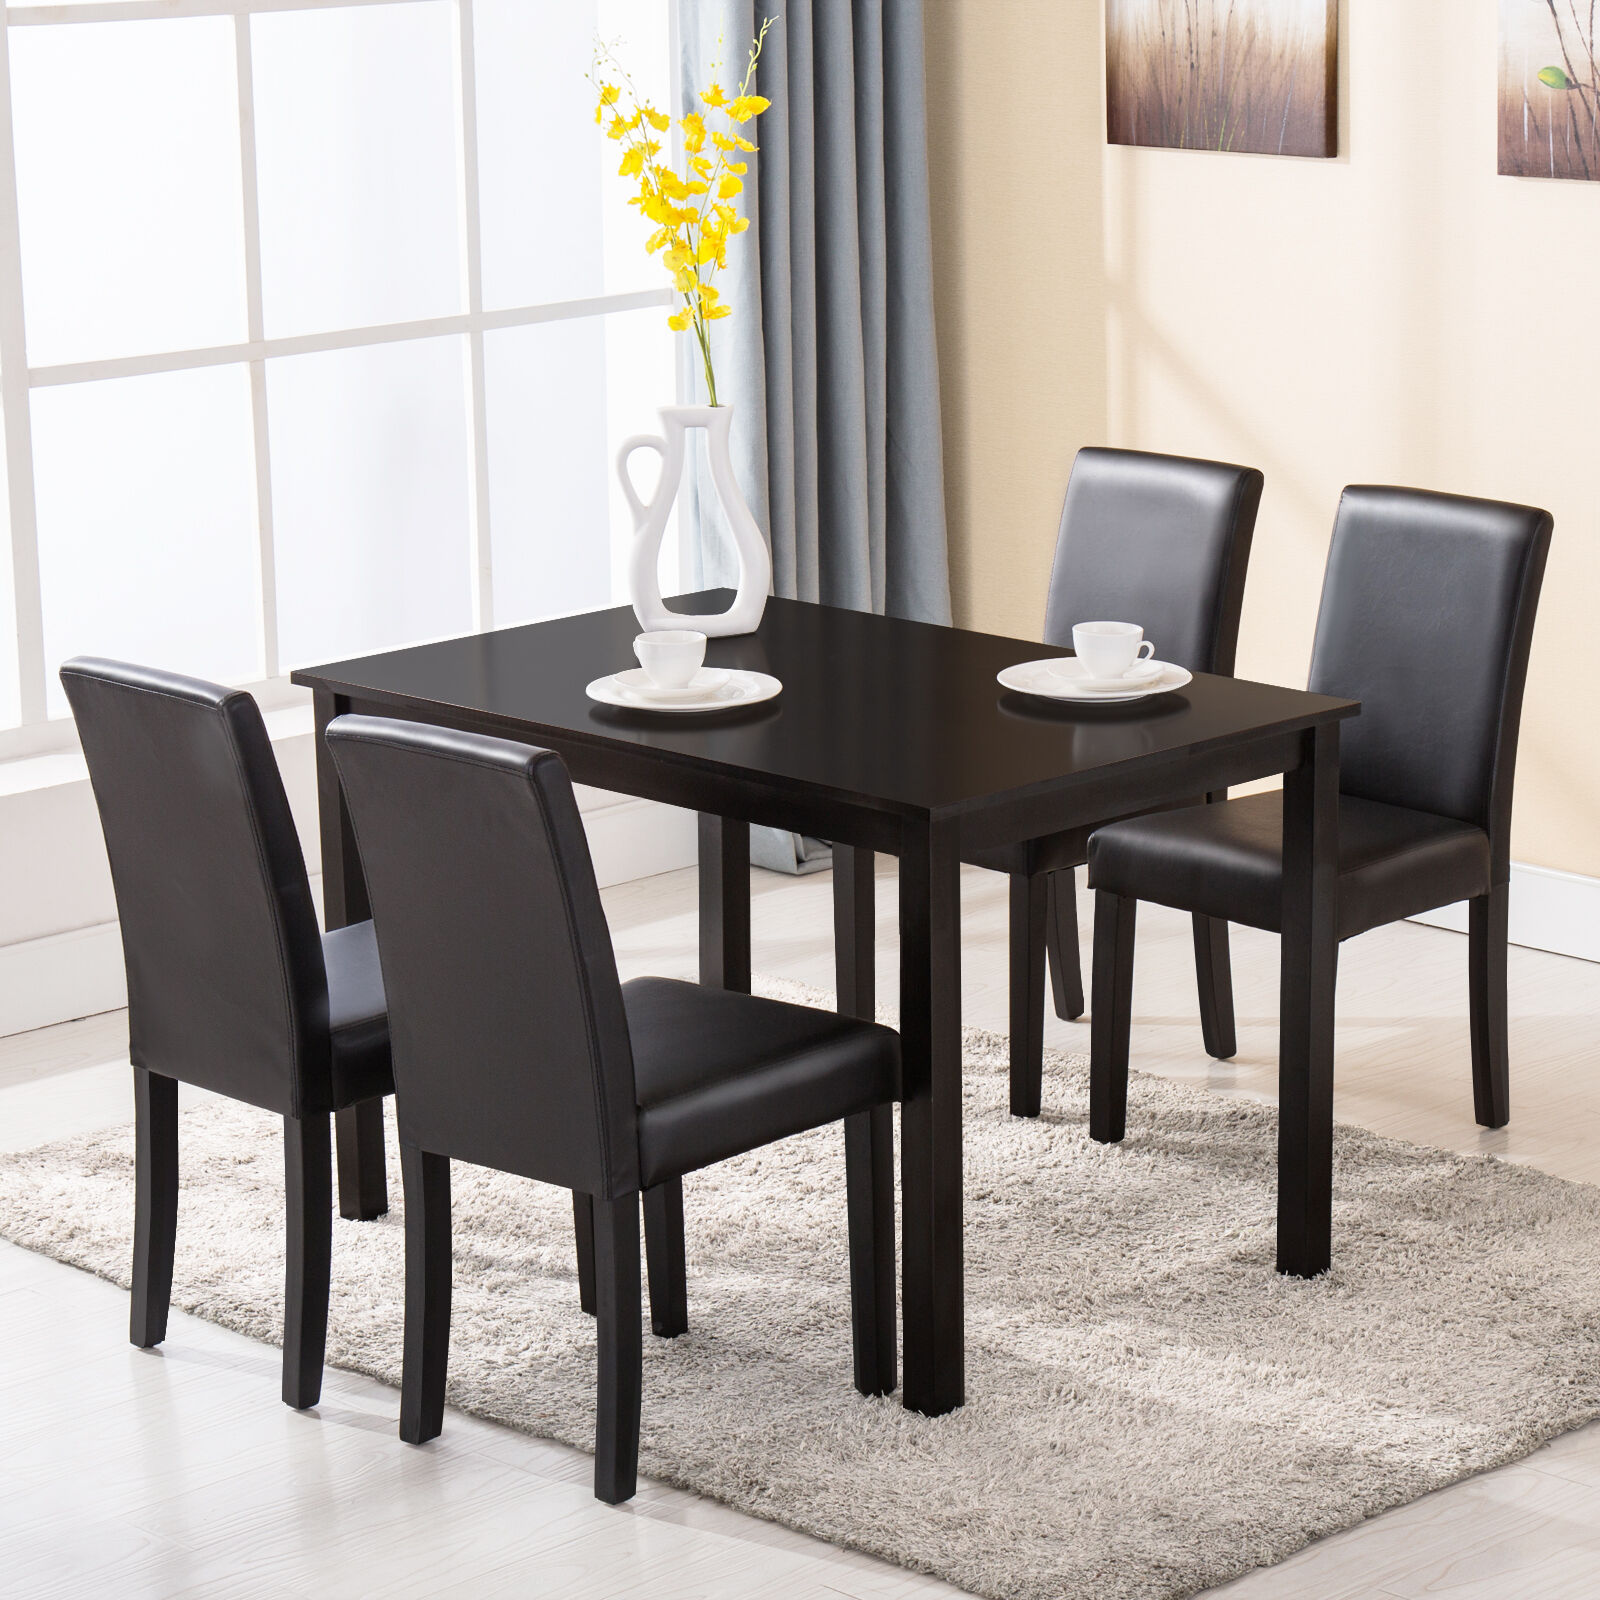 5 piece dining table set 4 chairs wood kitchen dinette for Kitchen table with 4 chairs